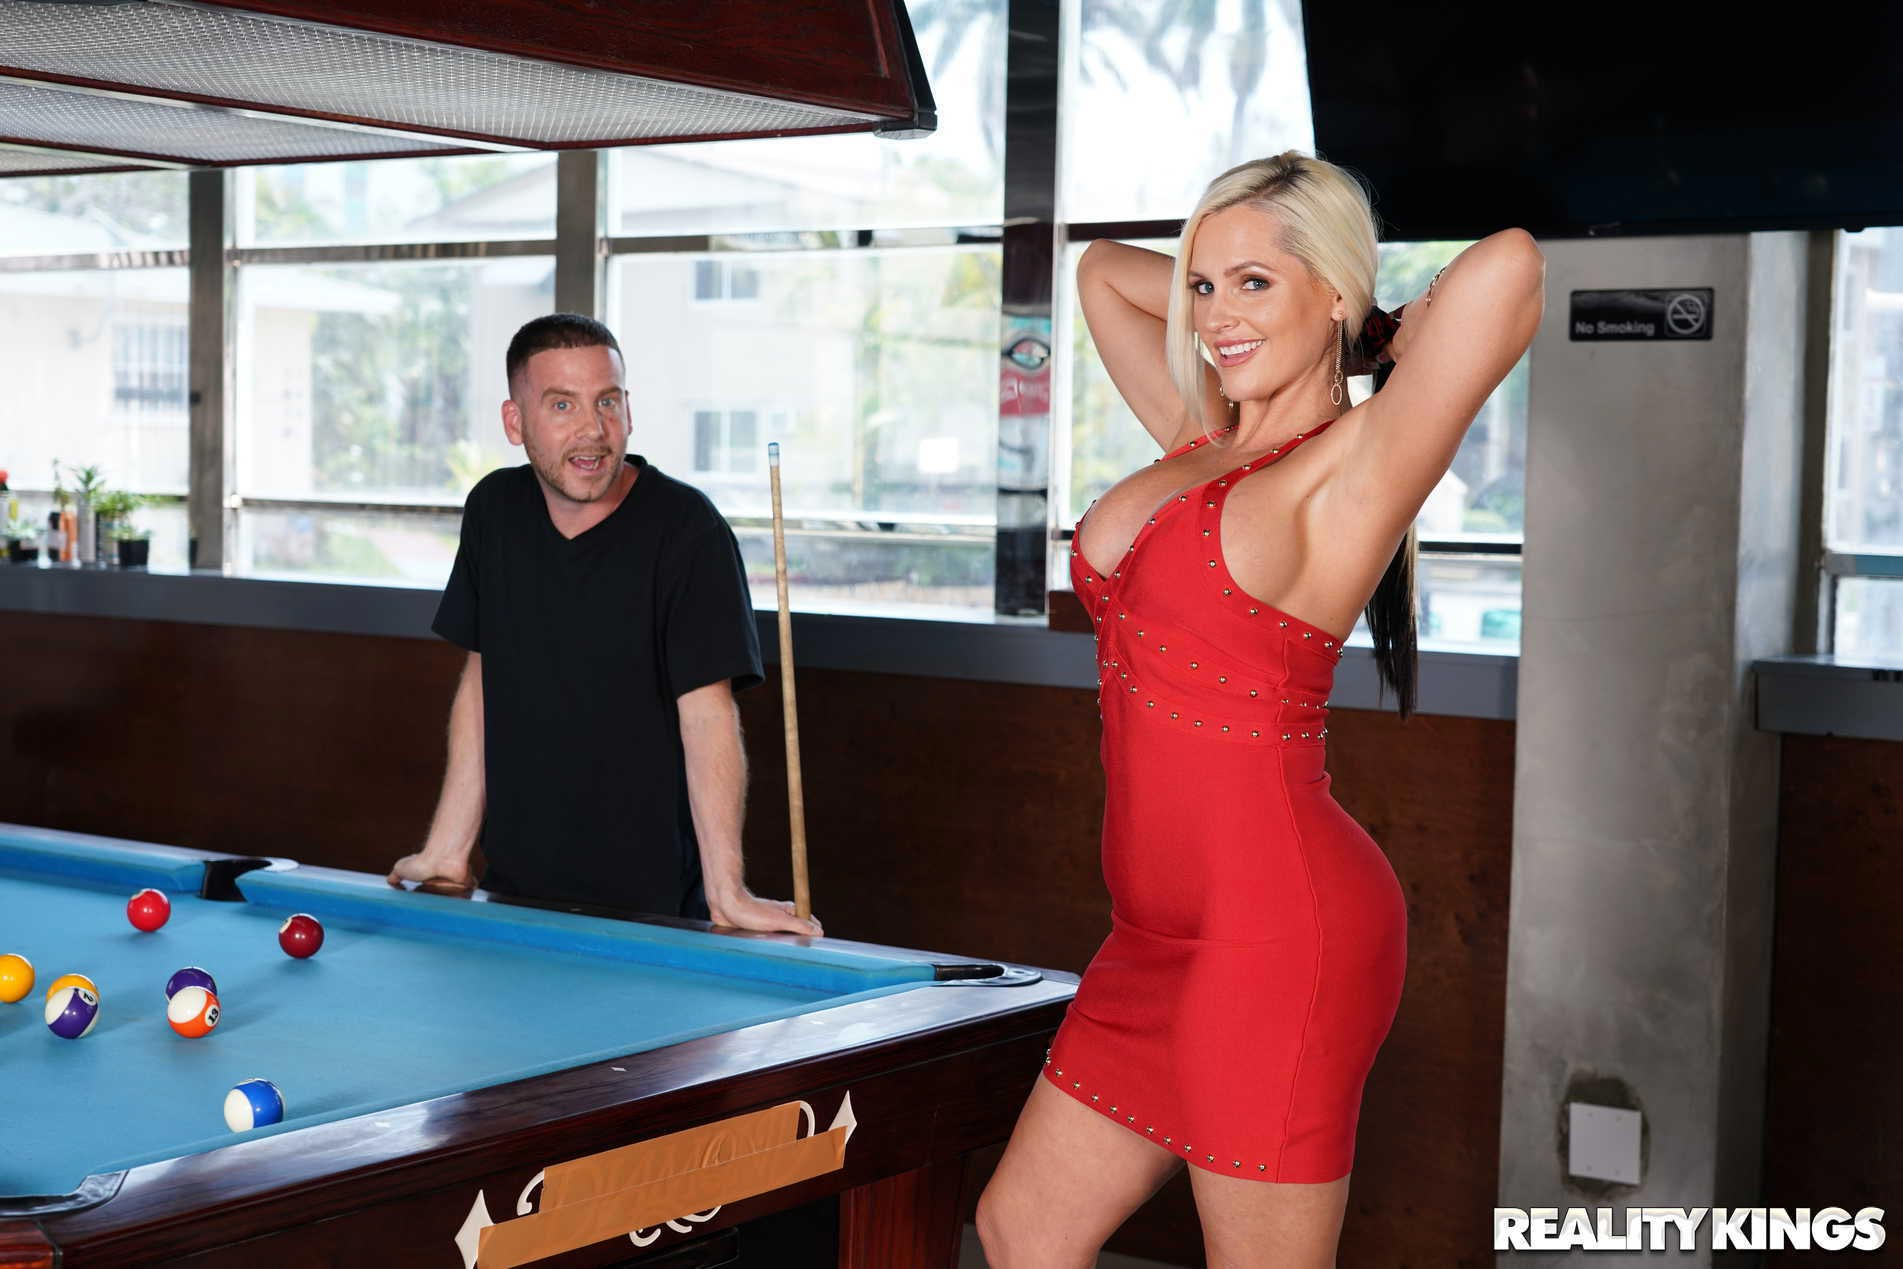 Horny billiards players enjoy blowjob